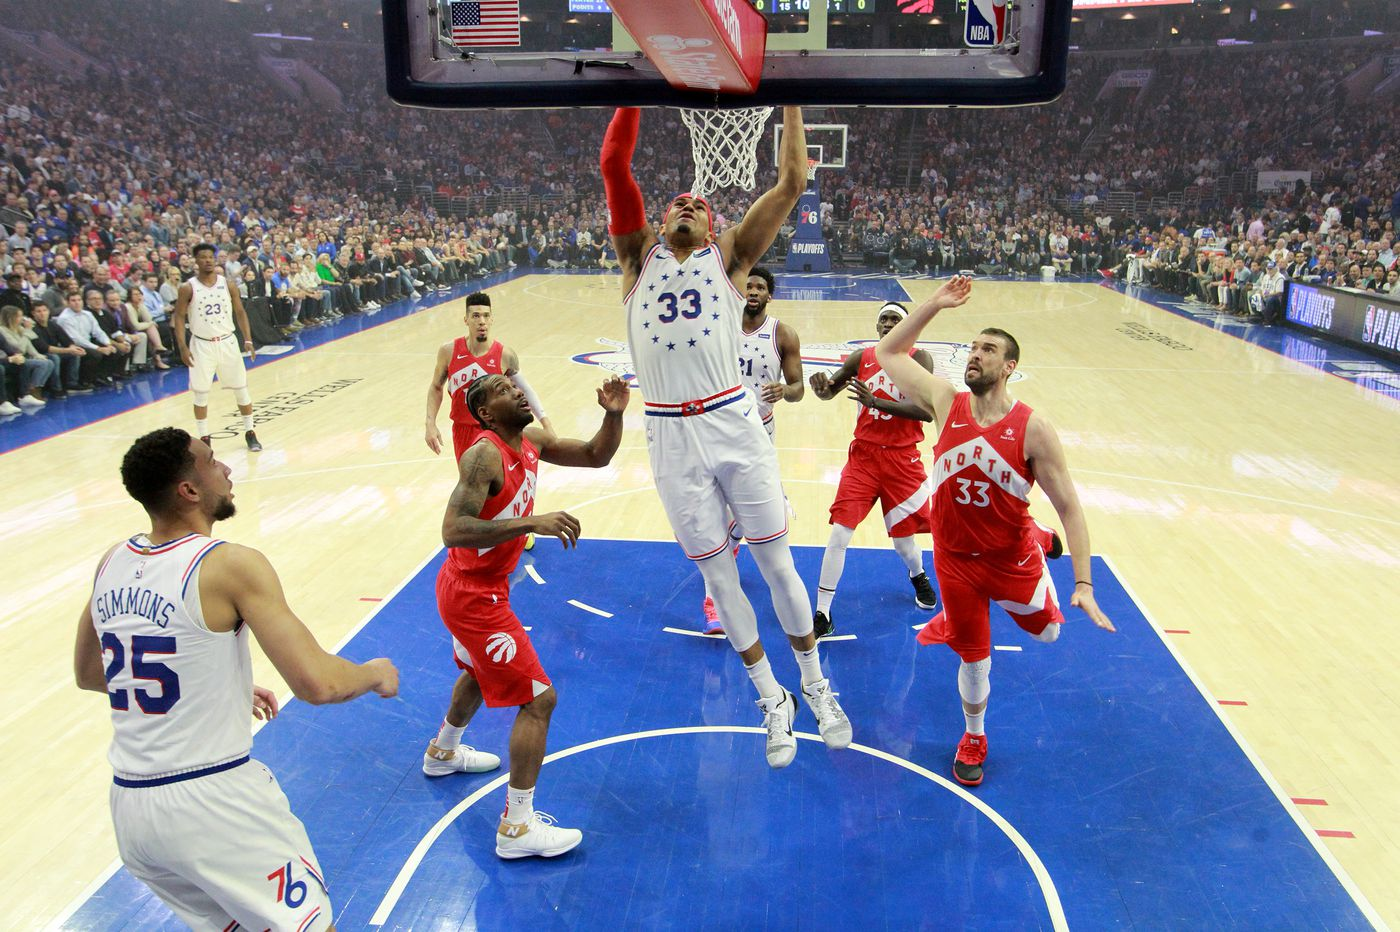 Processing how the Sixers' odds to win the NBA championship have changed over the years